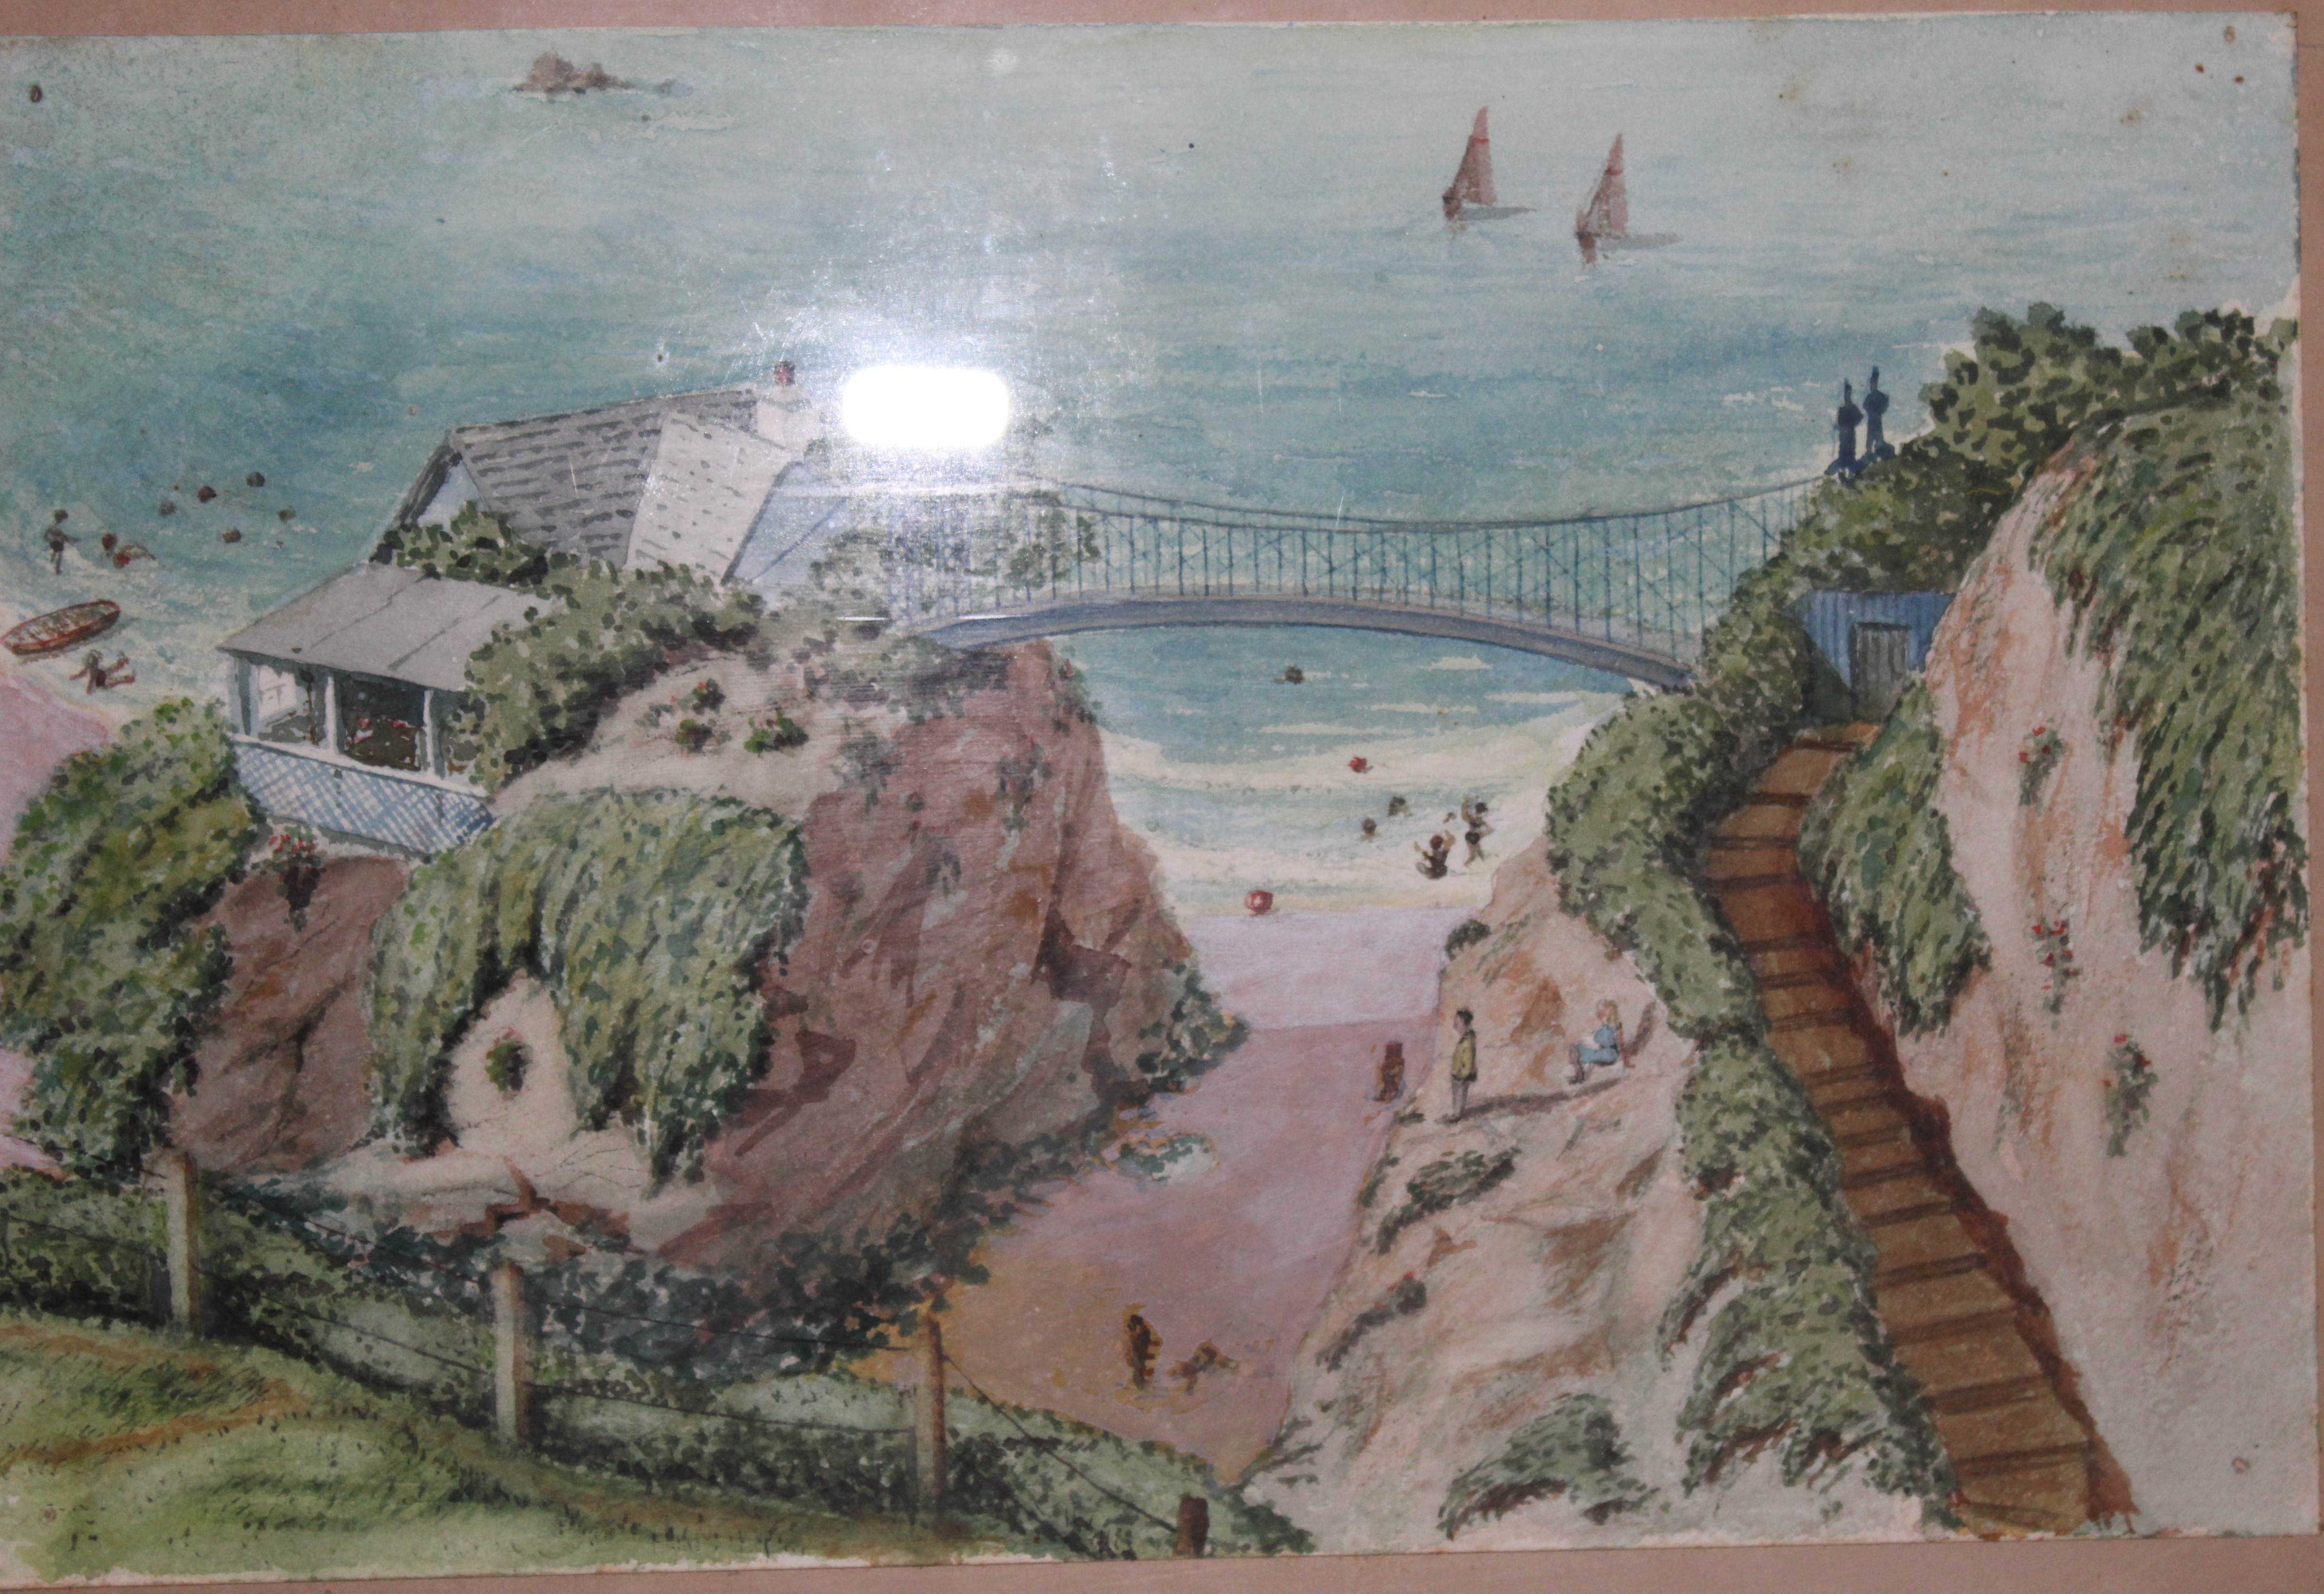 •BIDEFORD, WOMAN, CHILD AND DOG BESIDE RIVER Unsigned framed watercolour, 22.5 x 29cm, CALSTOCK - Image 2 of 3